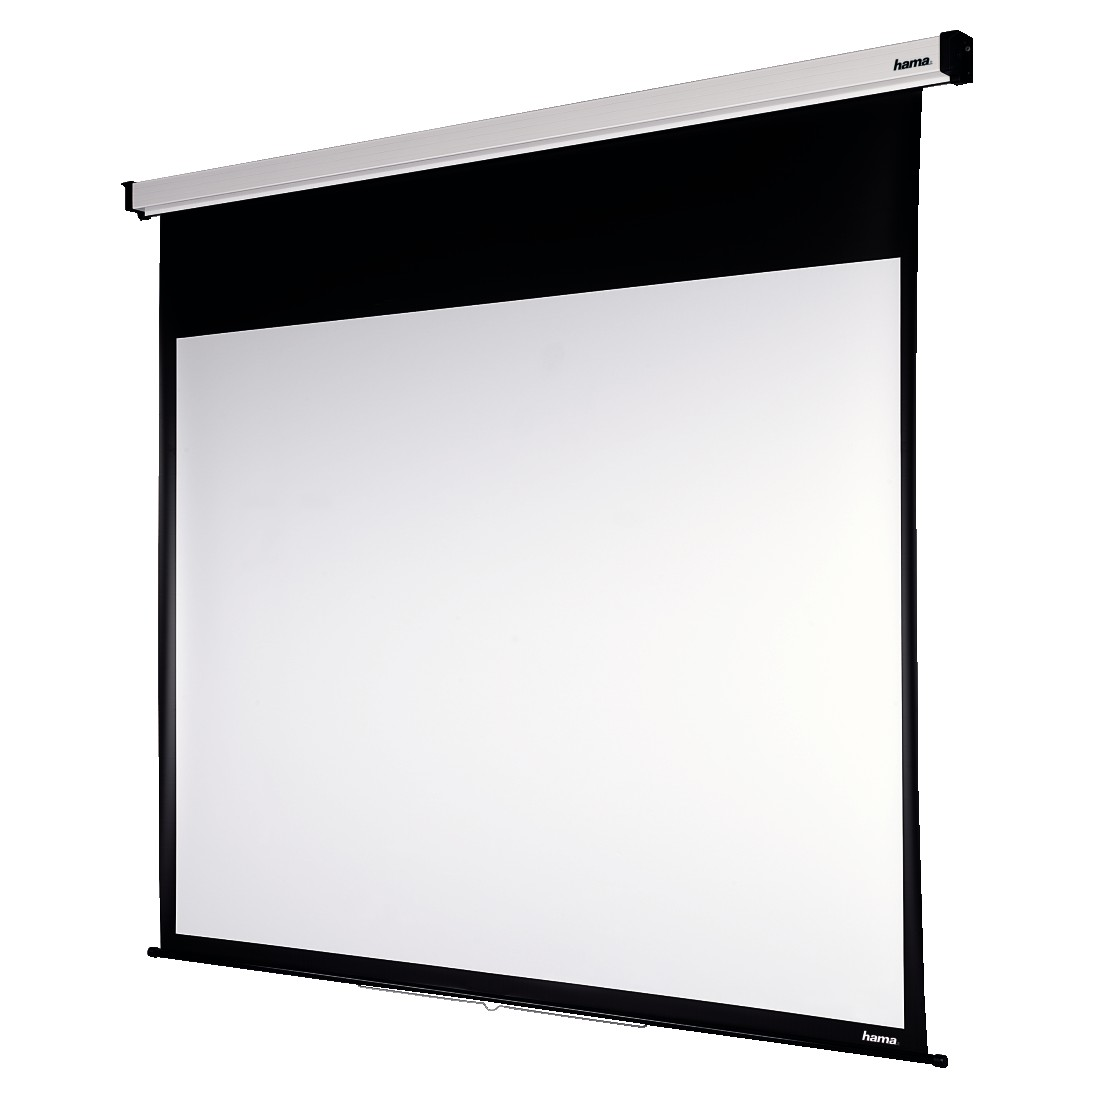 abx3 High-Res Image 3 - Hama, Roller Projection Screen, 240 x 195 cm, 4:3